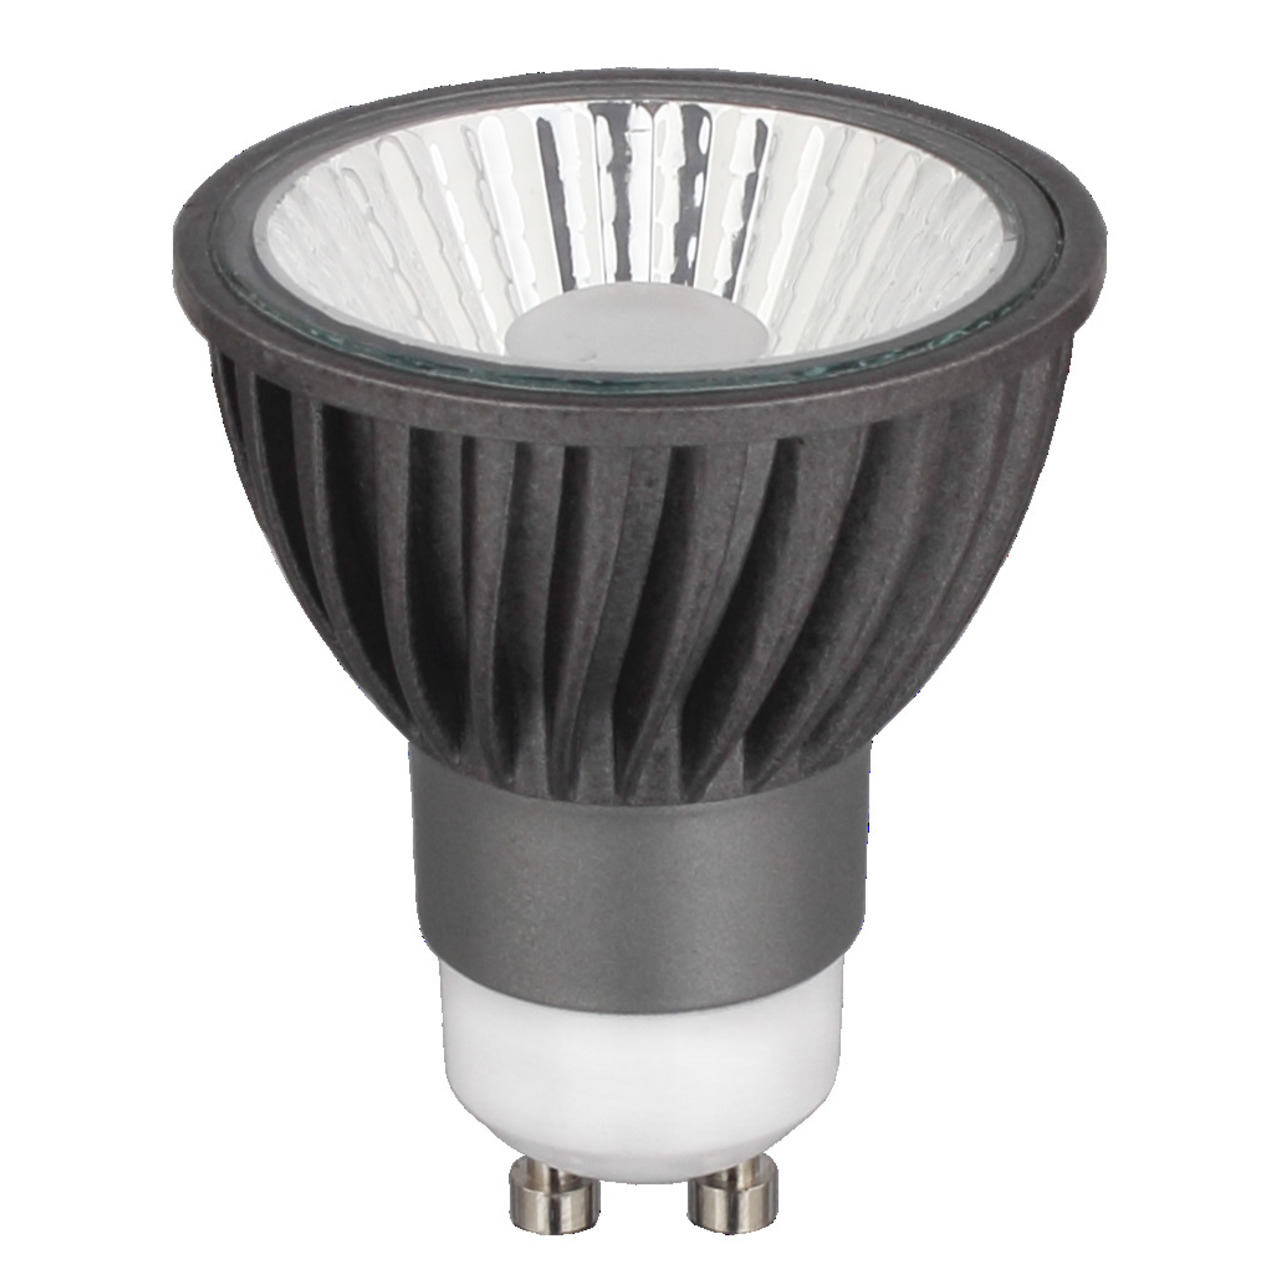 CV-Lighting HALED III 9-W-GU10-LED-Lampe- warmweiss (3000 K)- dimmbar- 36-